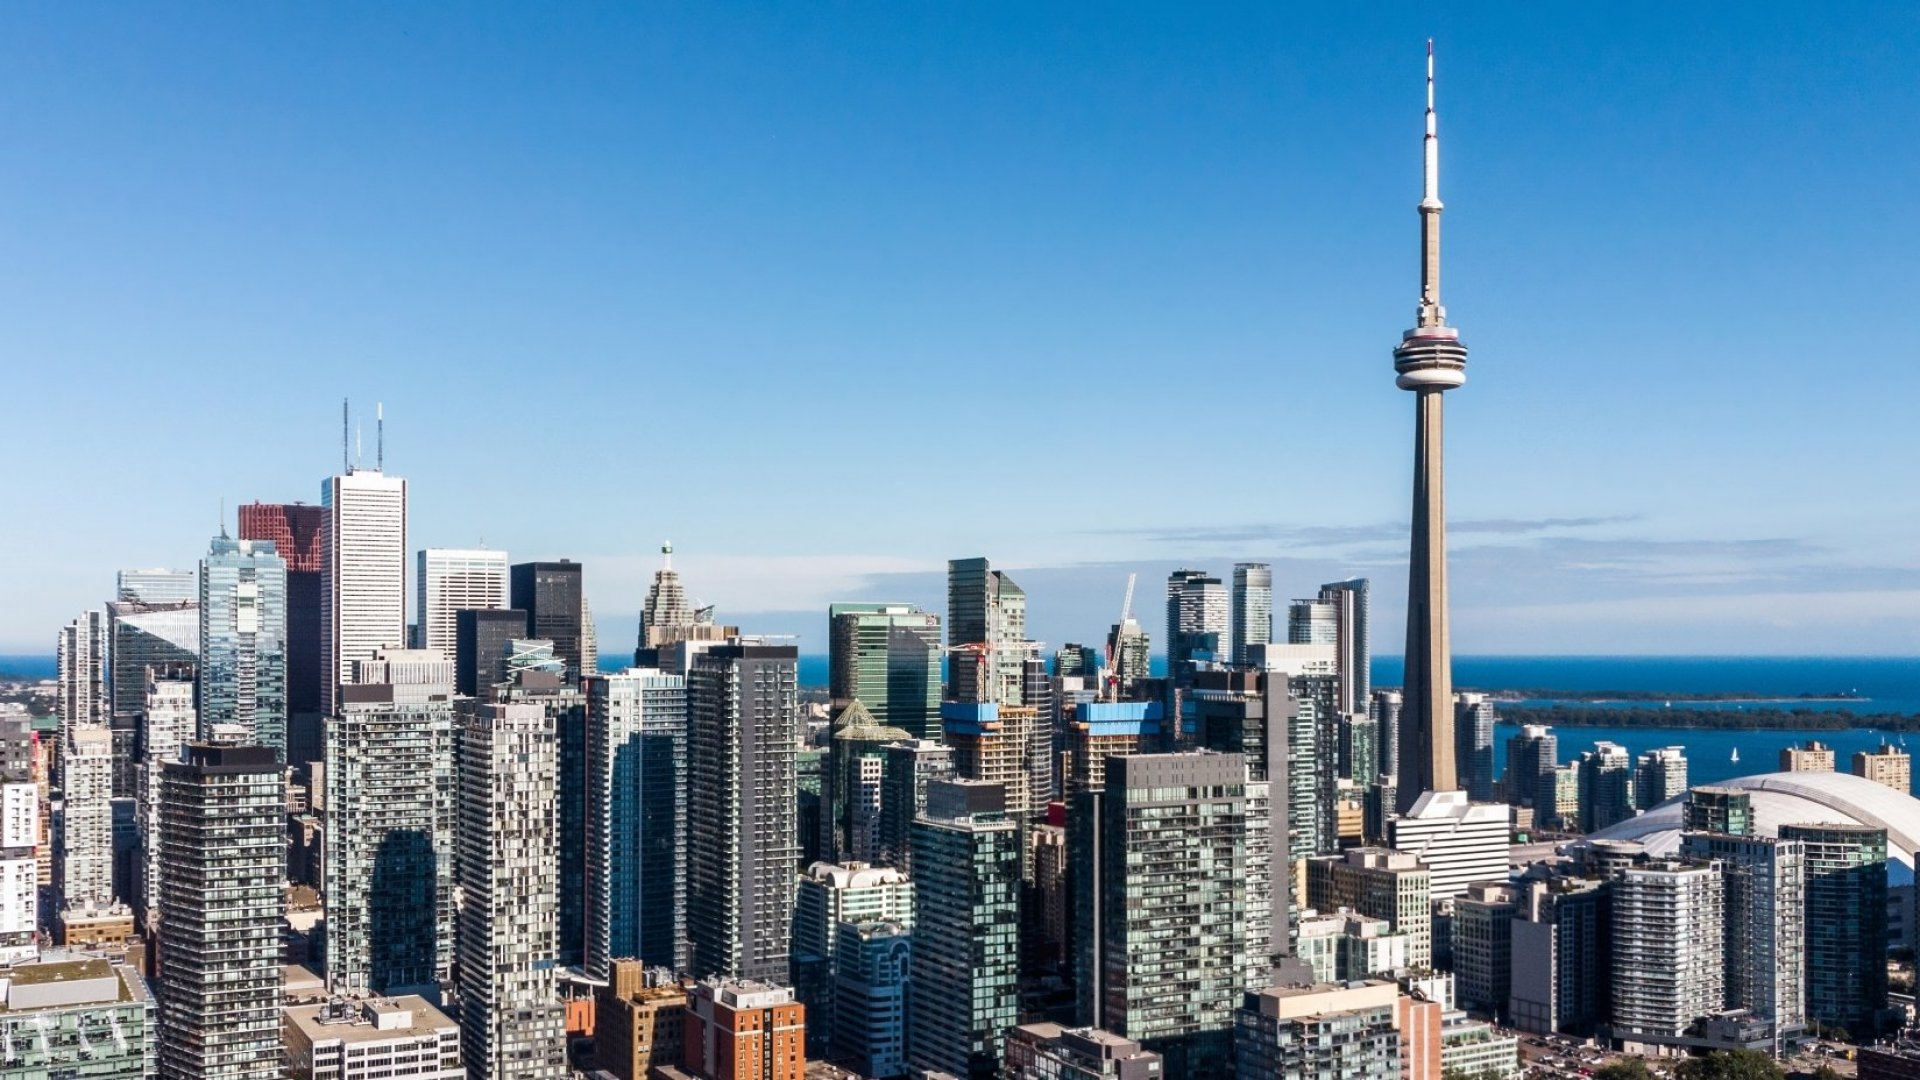 Google's Partner Company Just Unveiled Its Controversial 'Smart City' for Toronto. It Raises Alarm Bells About Privacy